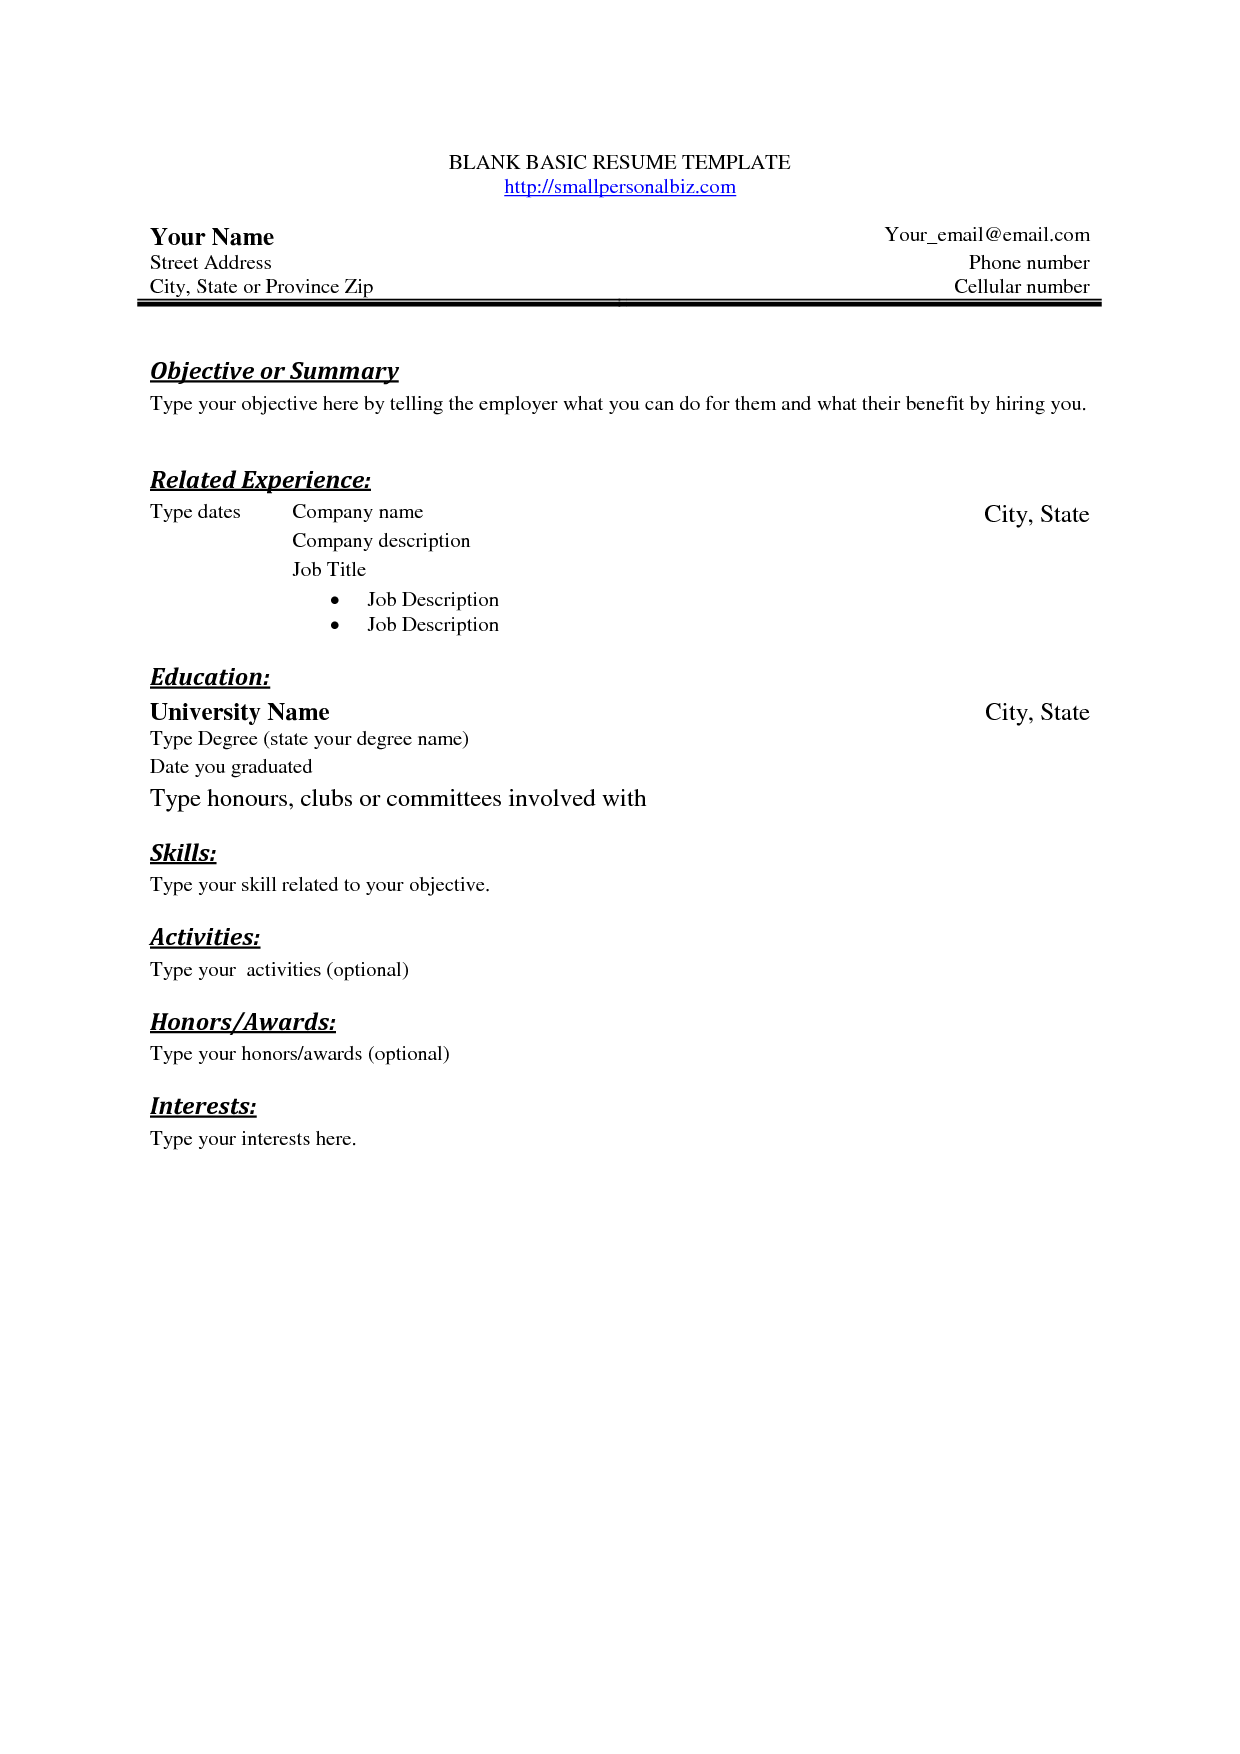 Stylist And Luxury Simple Resume Layout 10 Free Basic Blank Resume